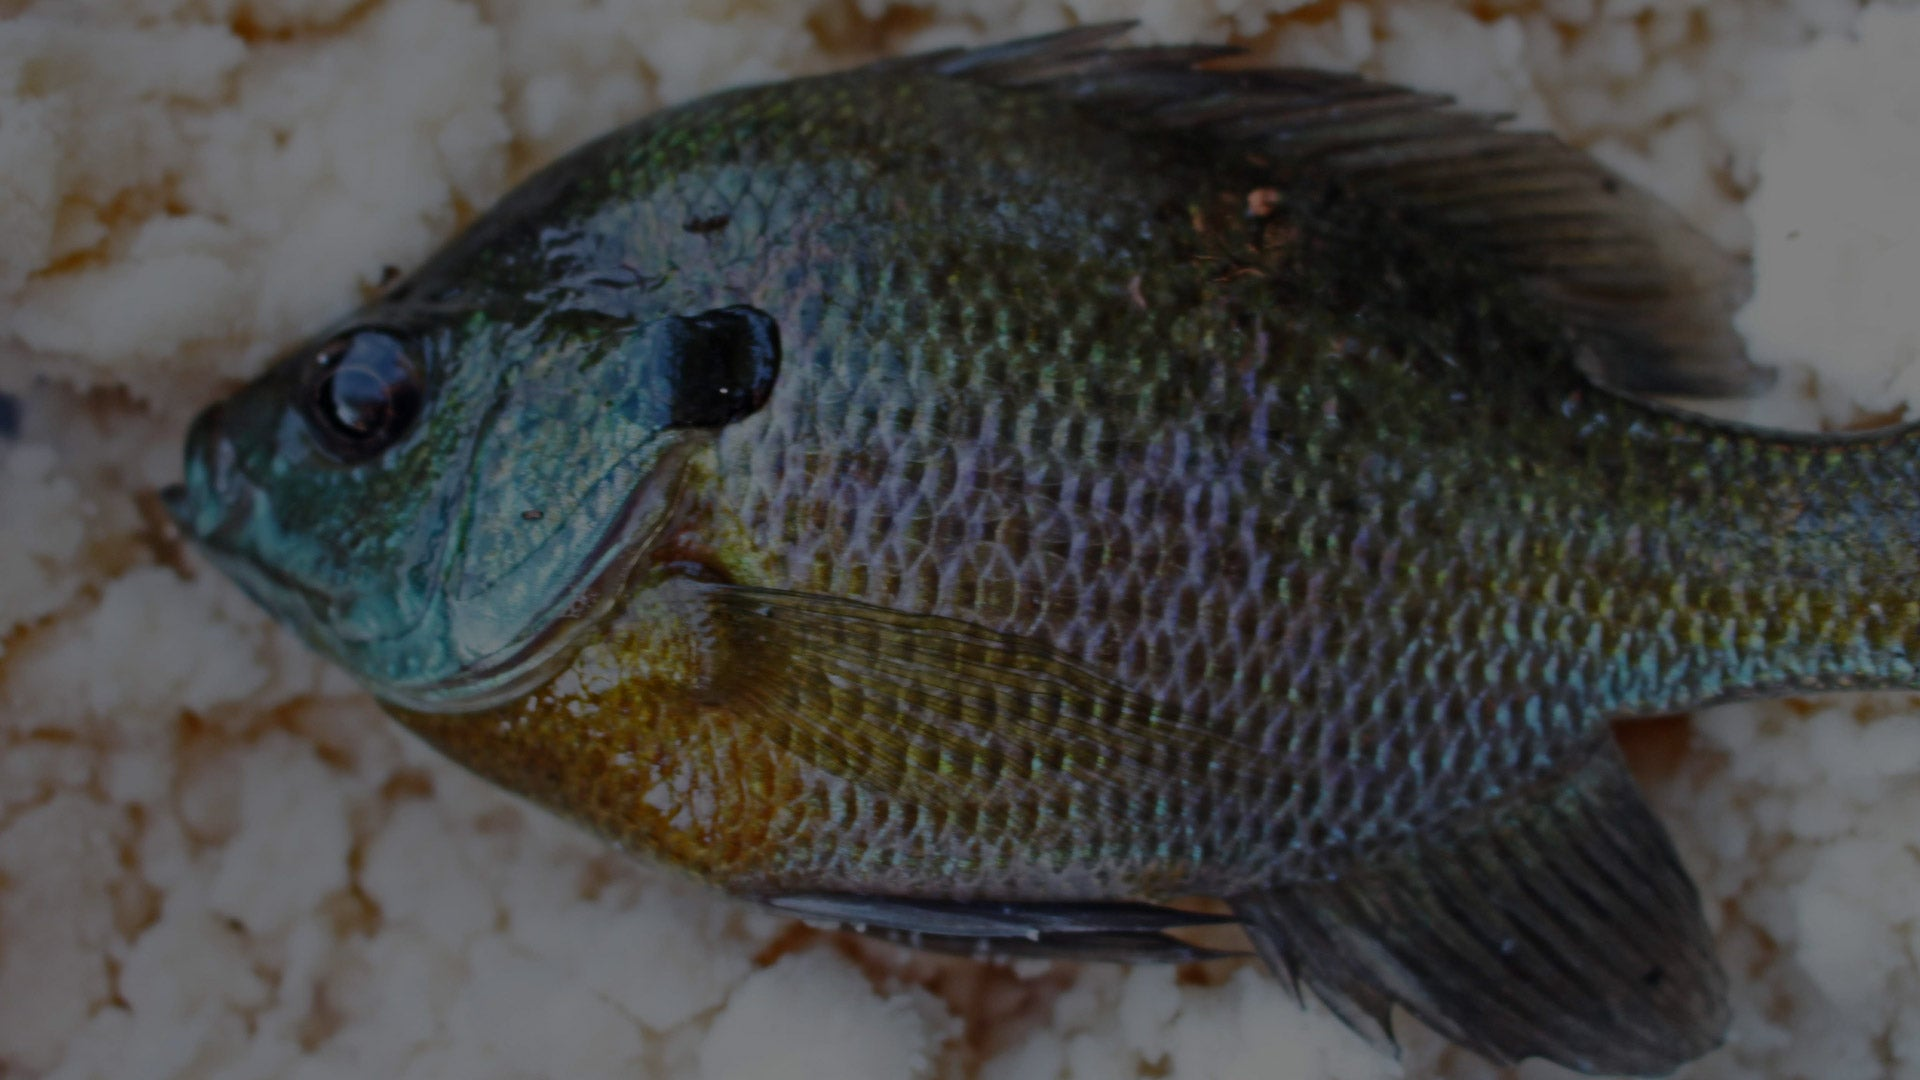 Panfishing 101: How to Catch Bluegill